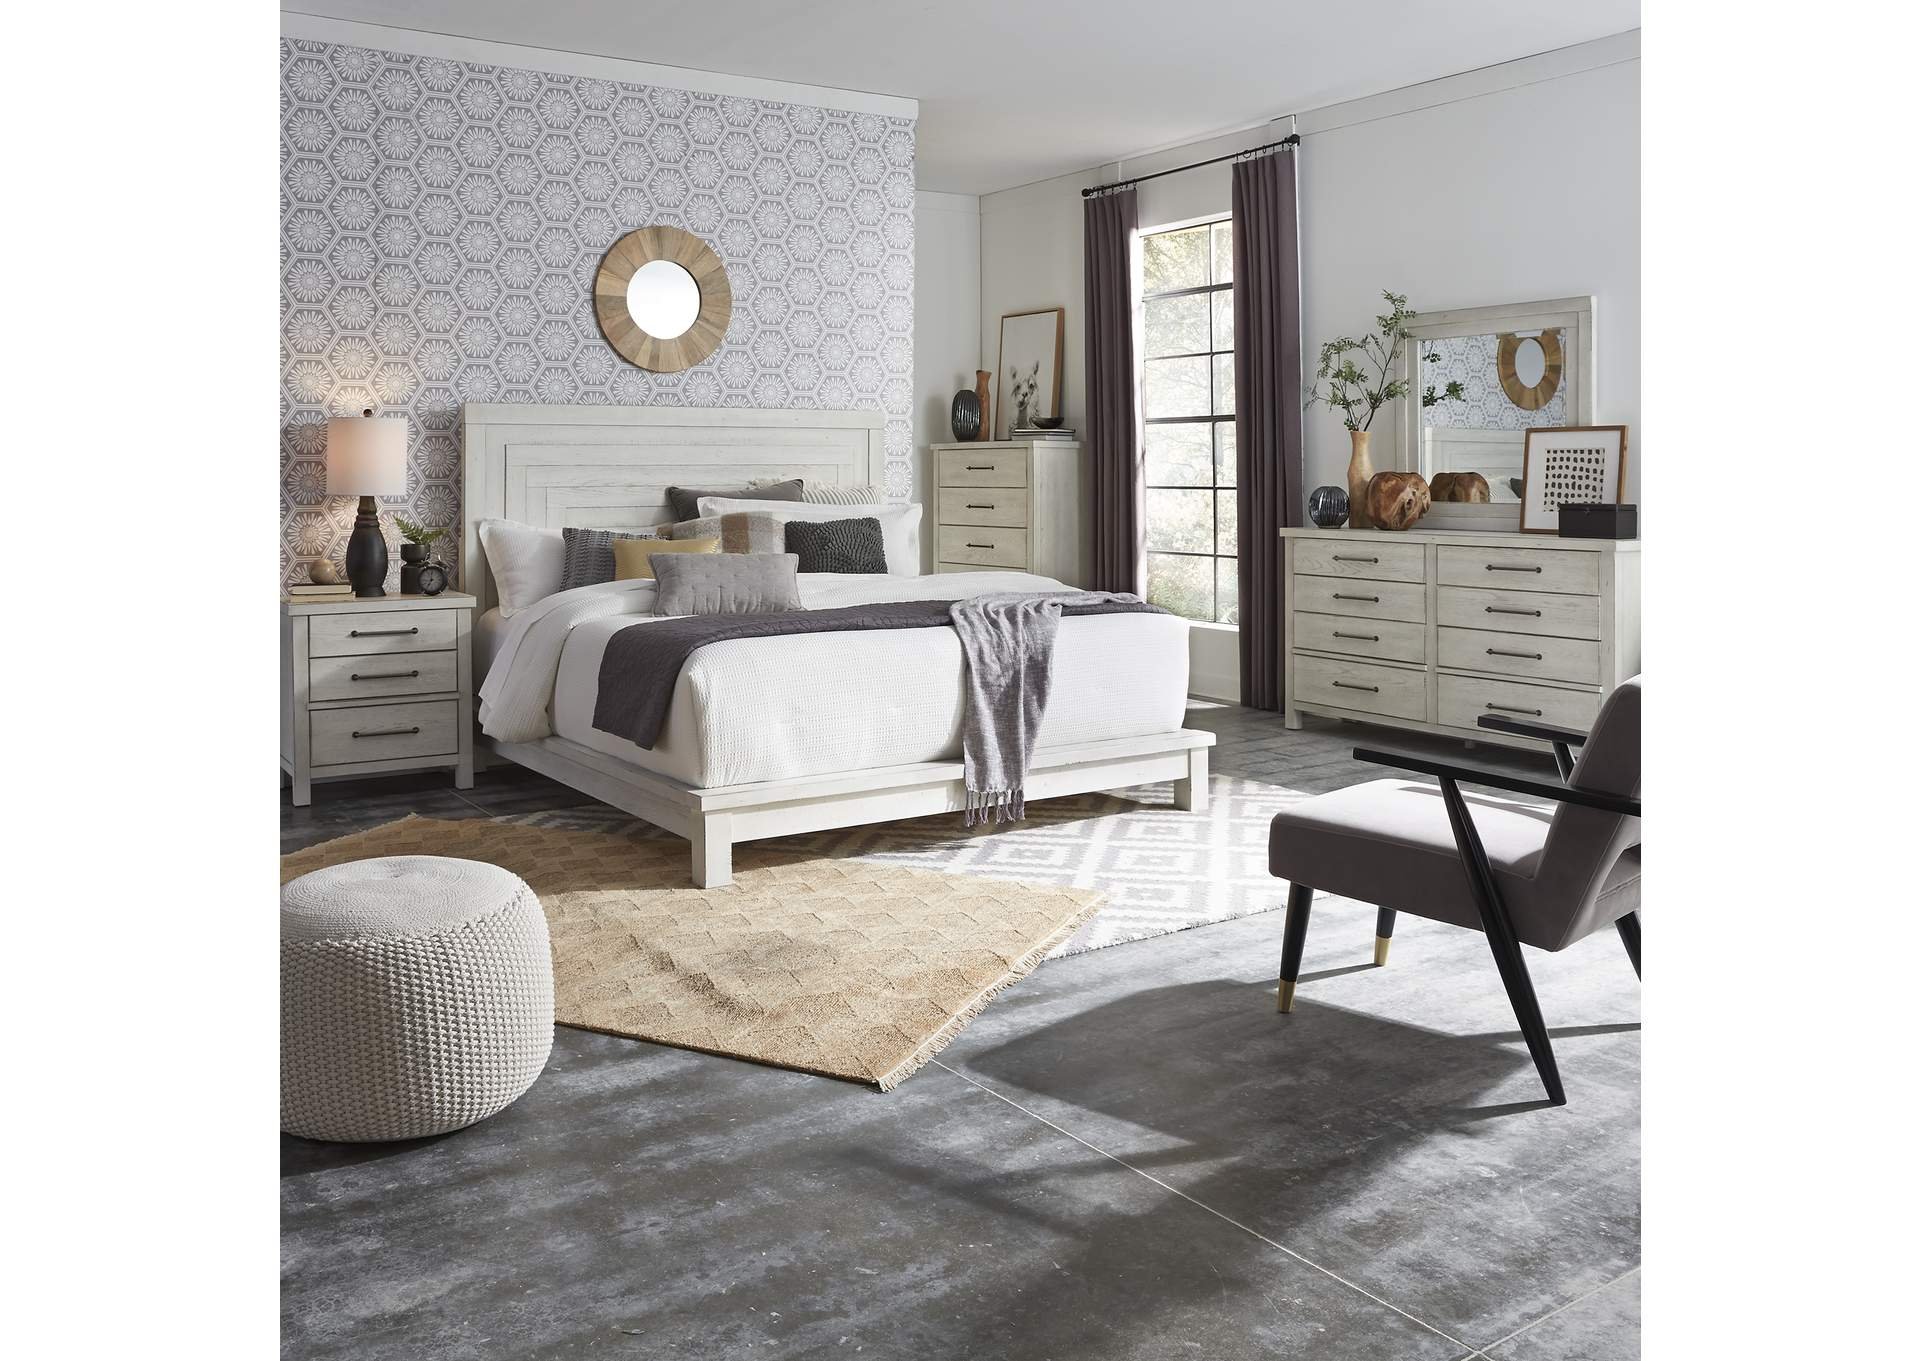 Modern Farmhouse Flea Market White Queen Platform Bed Dresser Mirror Chest Night Stand Rhynes Rhodes Furniture